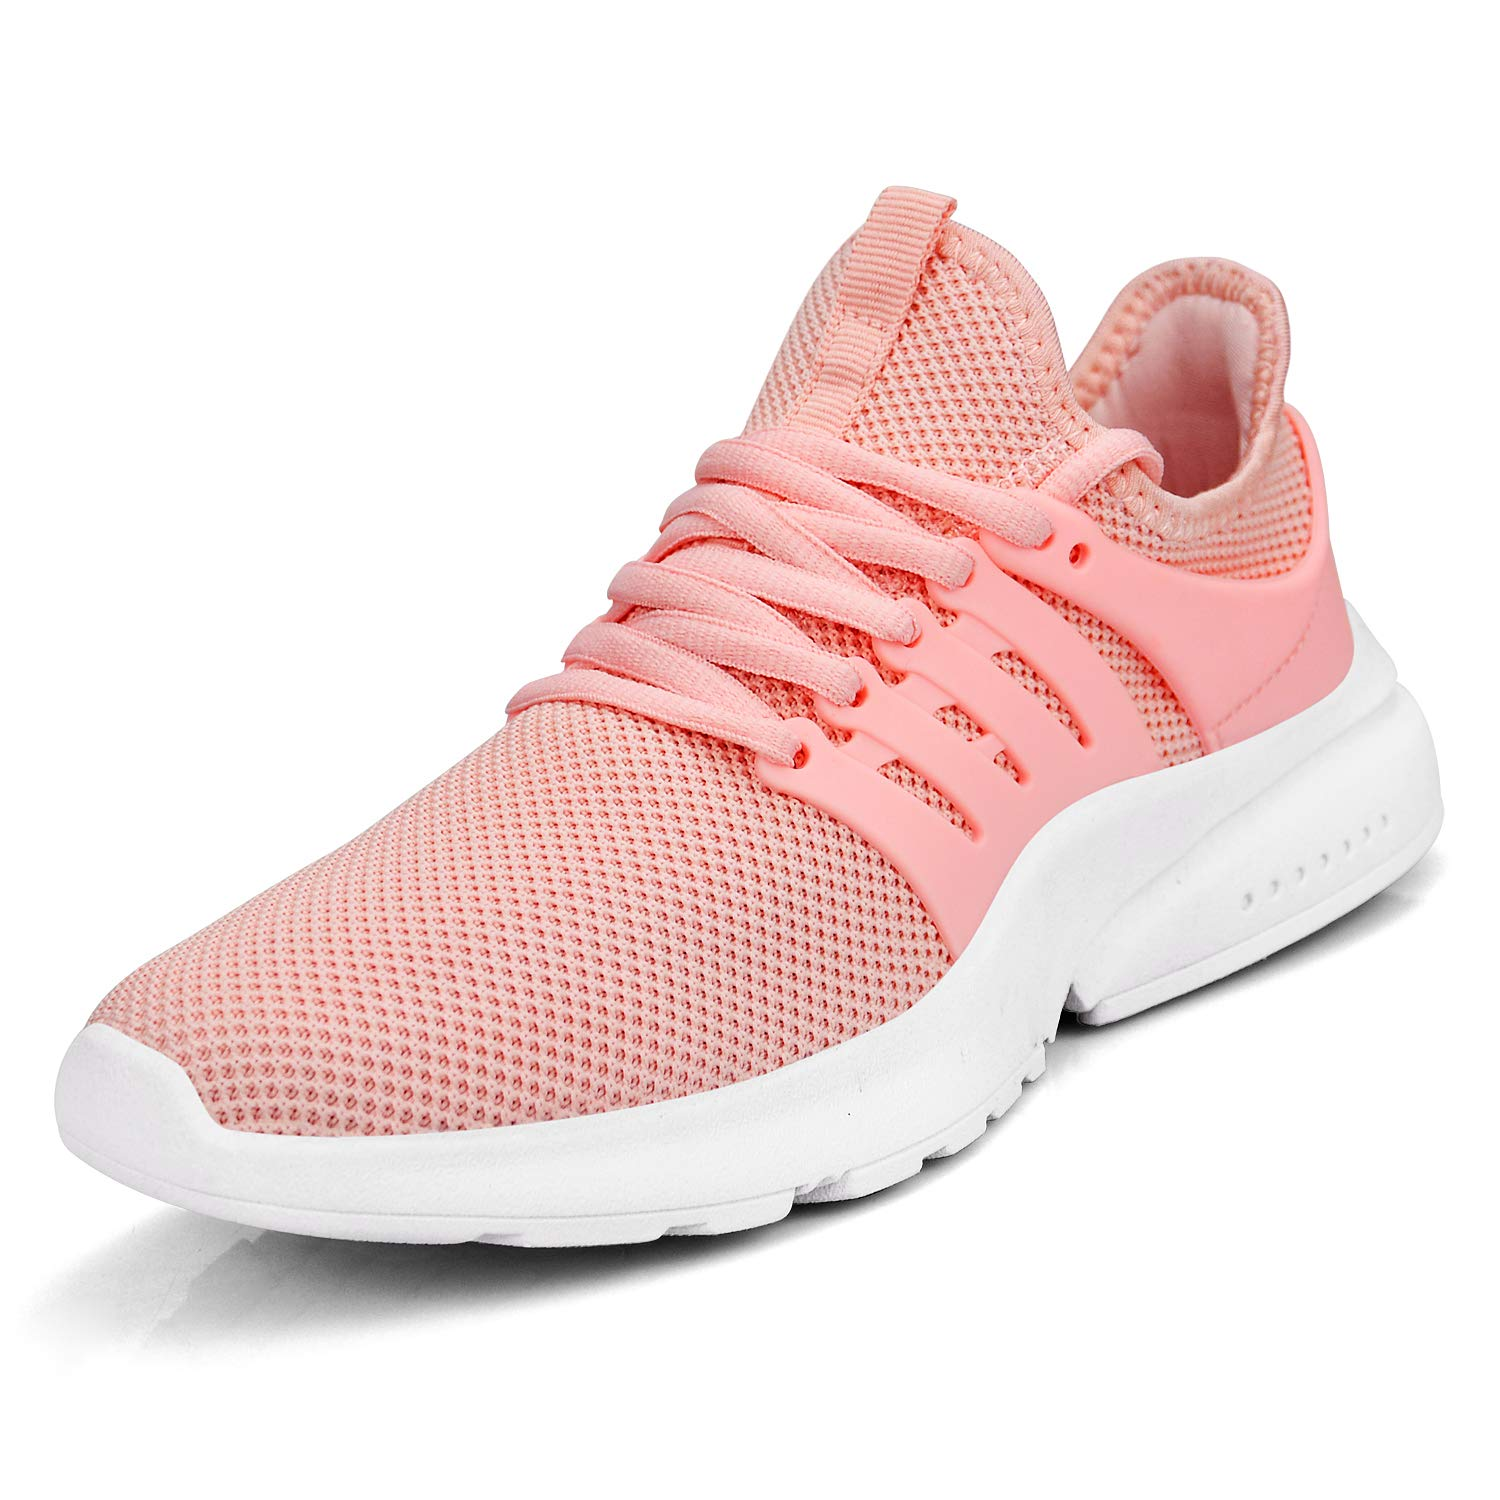 Pink Feetmat Women's Running shoes Lightweight Non Slip Breathable Mesh Sneakers Sports Athletic Walking shoes